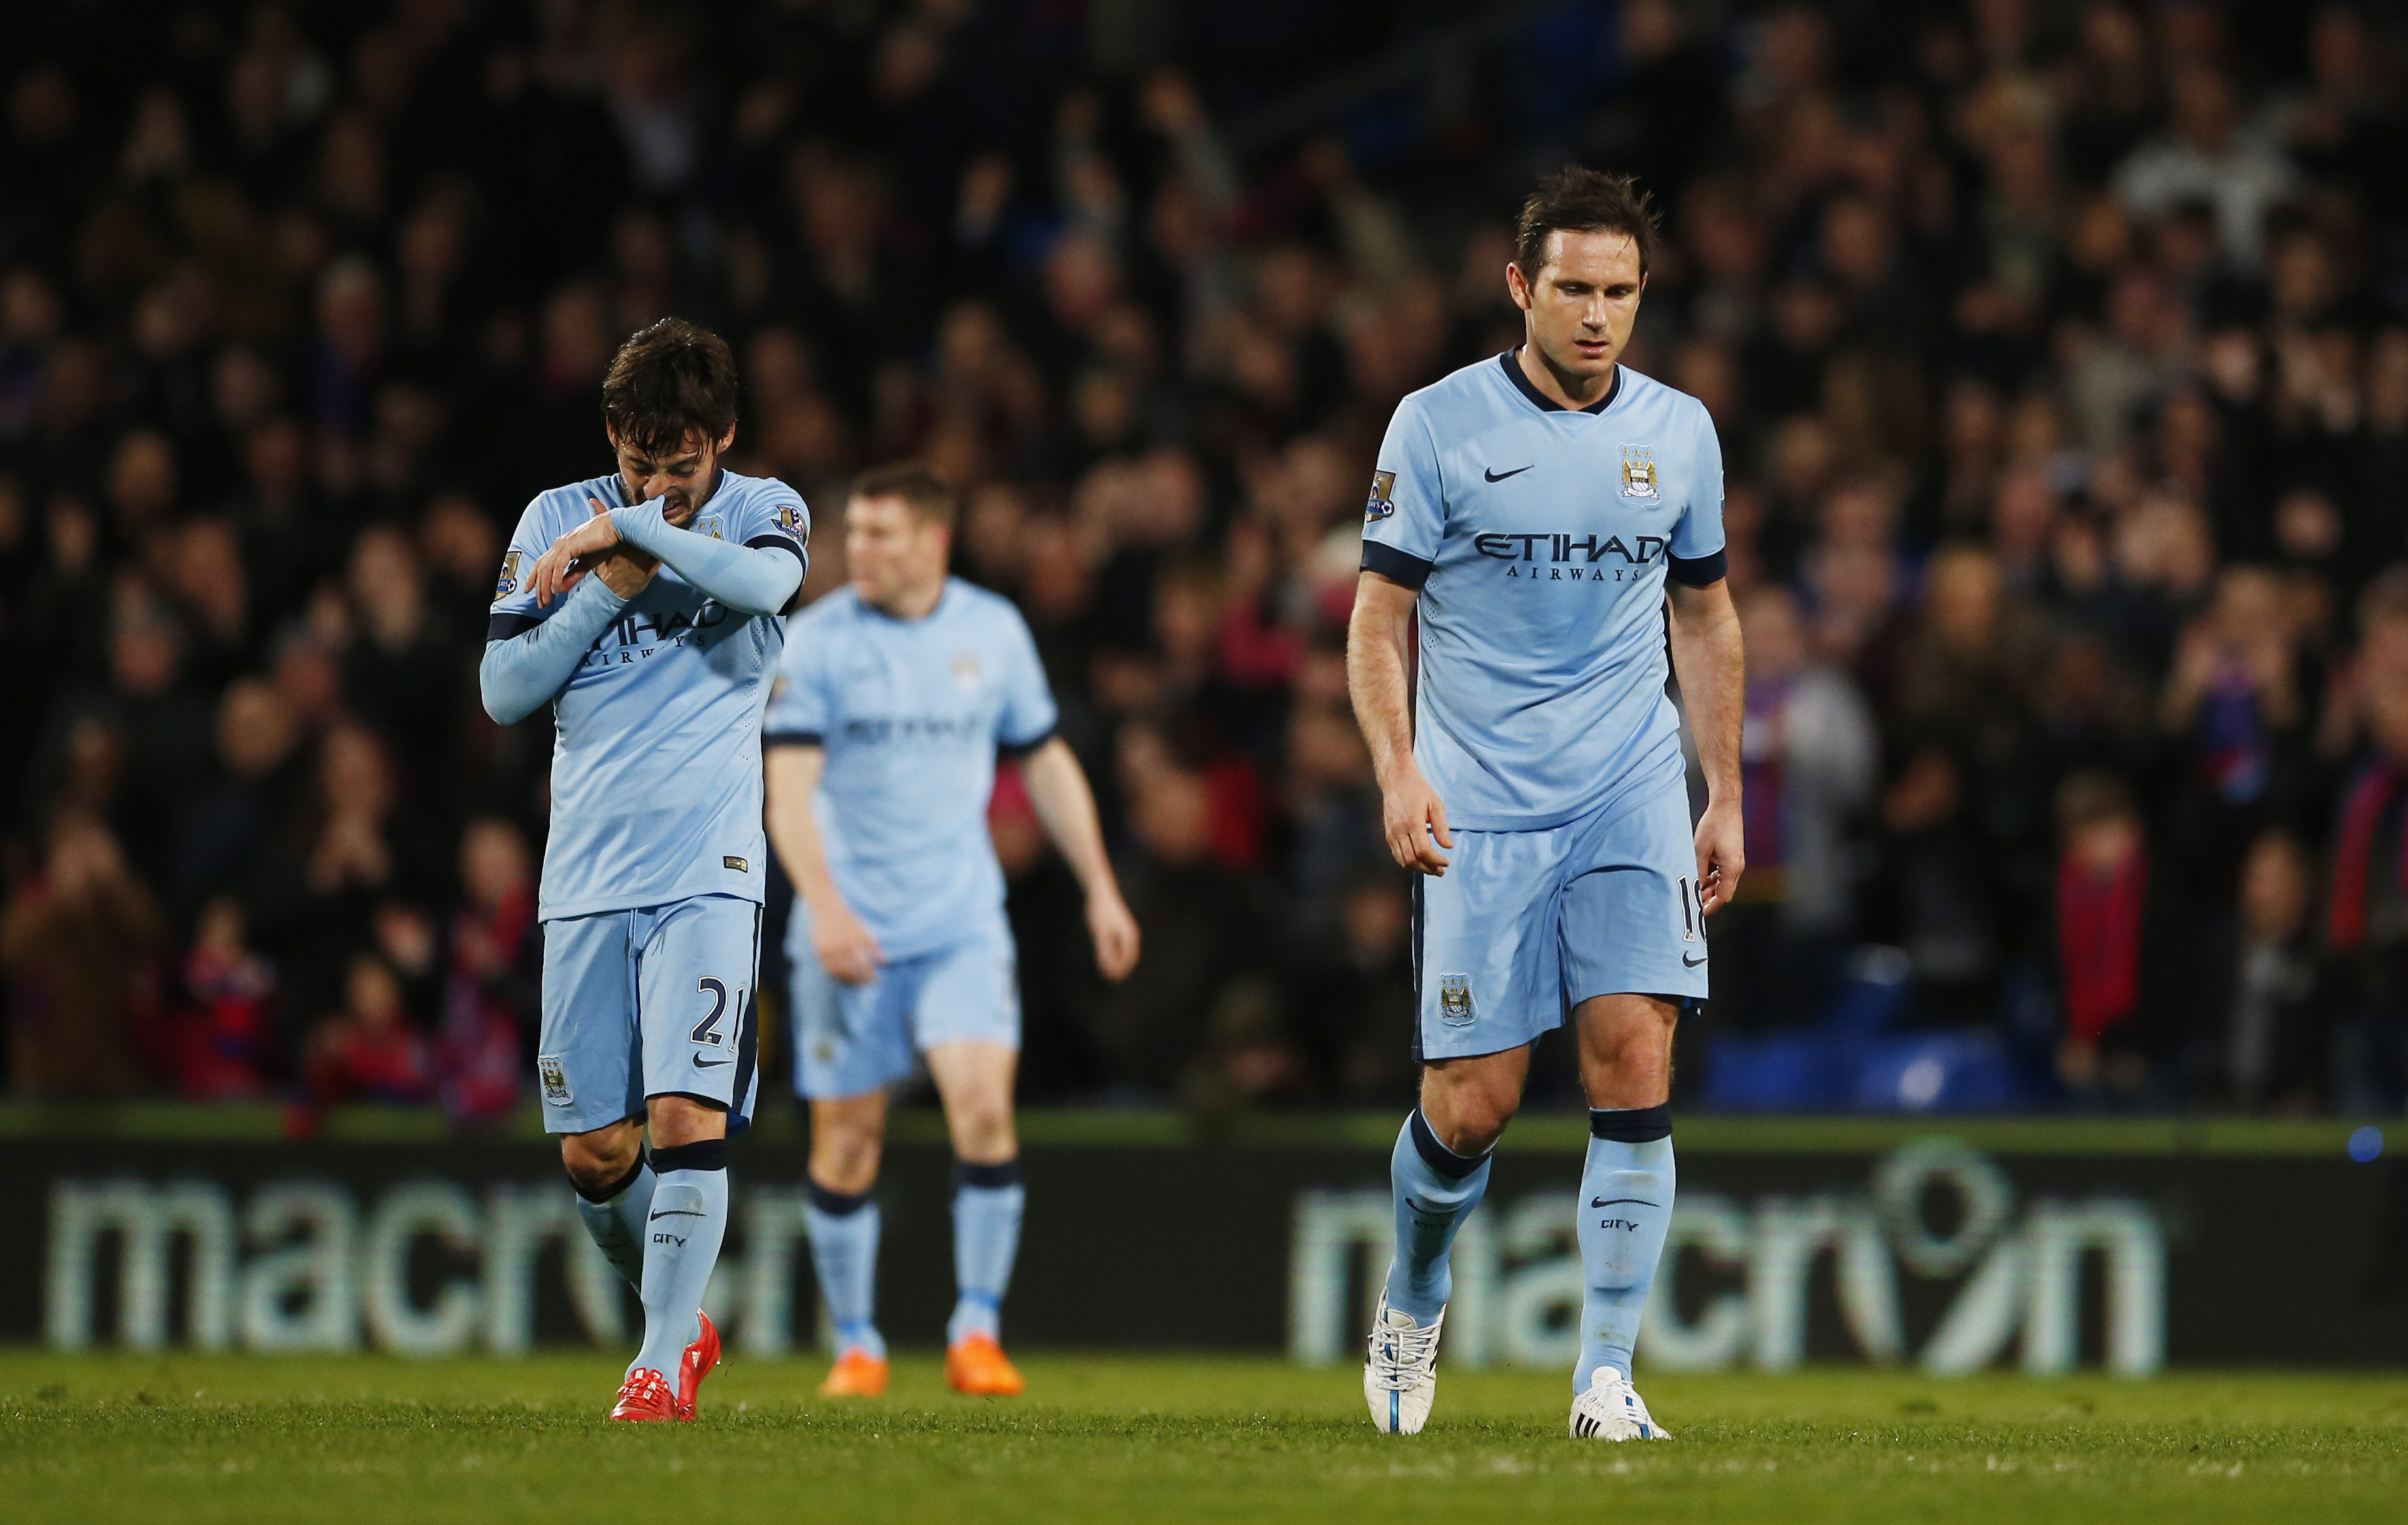 City's title hopes in tatters after defeat at Palace